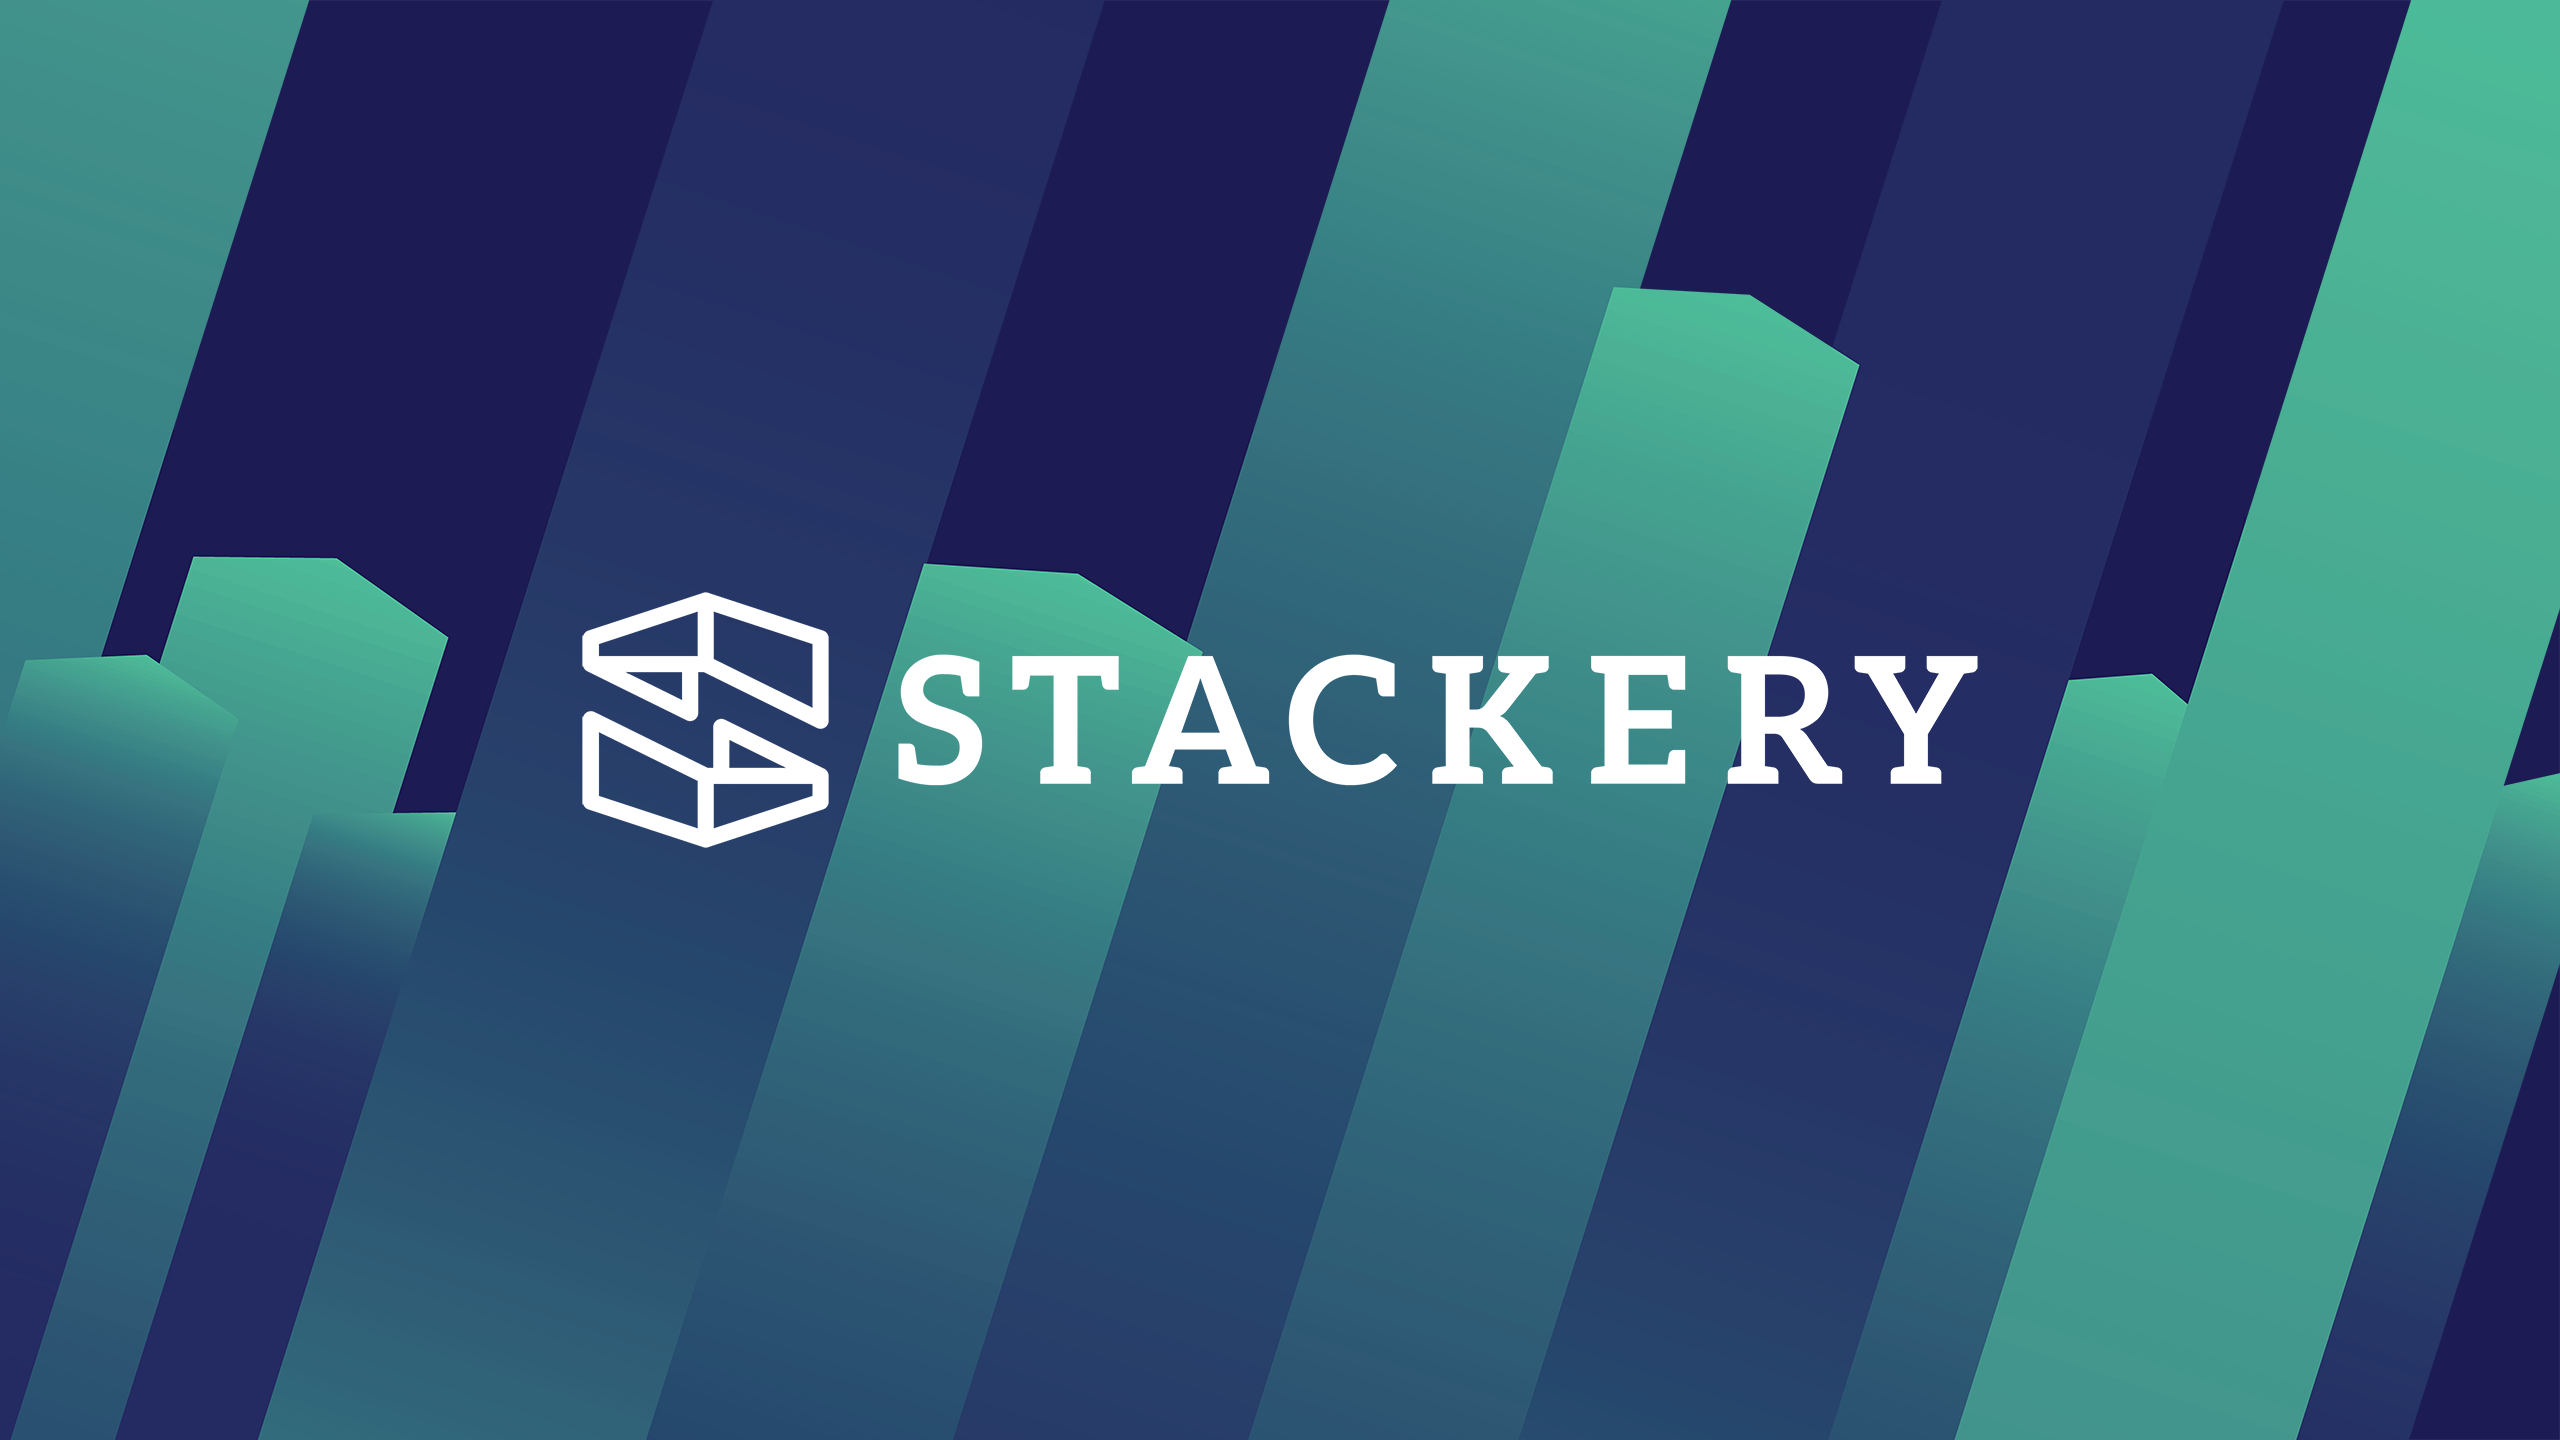 Stackery Welcomes Tim Wagner, Inventor of AWS Lambda, to Board of Directors